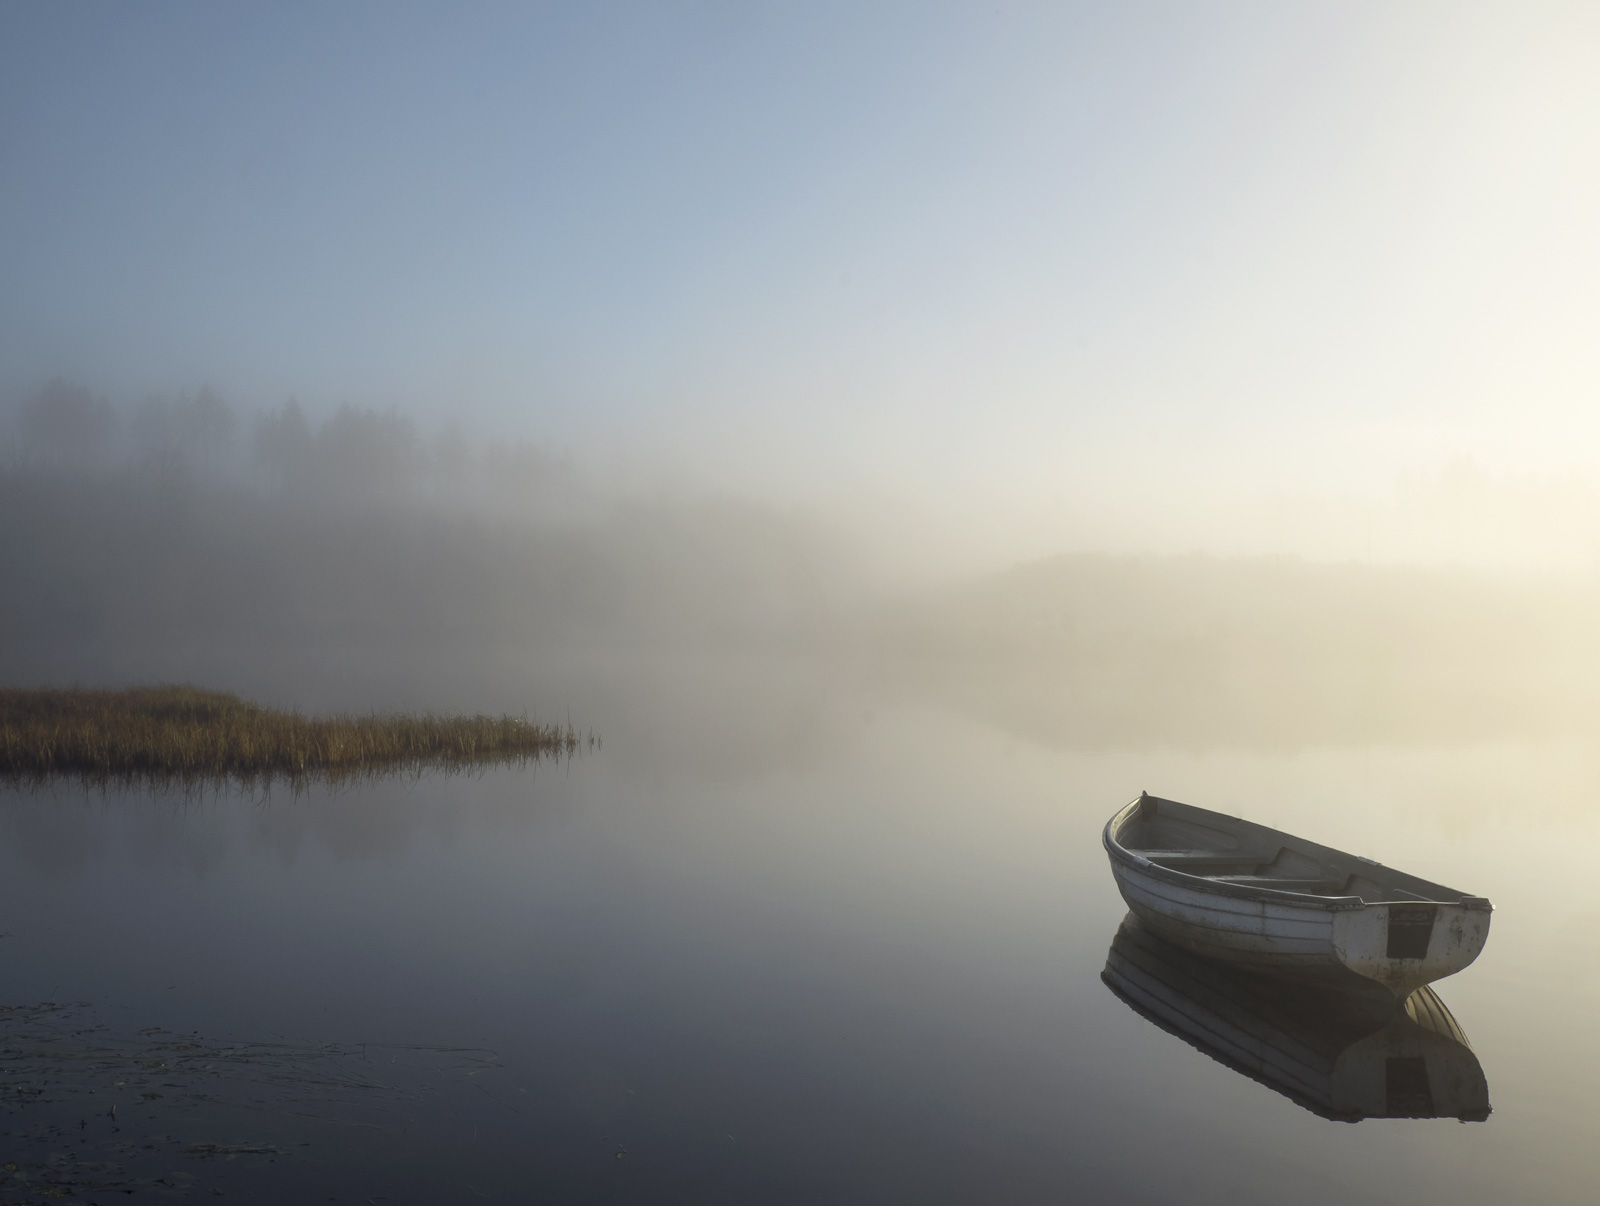 Completely serene a single moored row boat floats in perfect serenity on a mirror of water, mist softly rising from its surface...